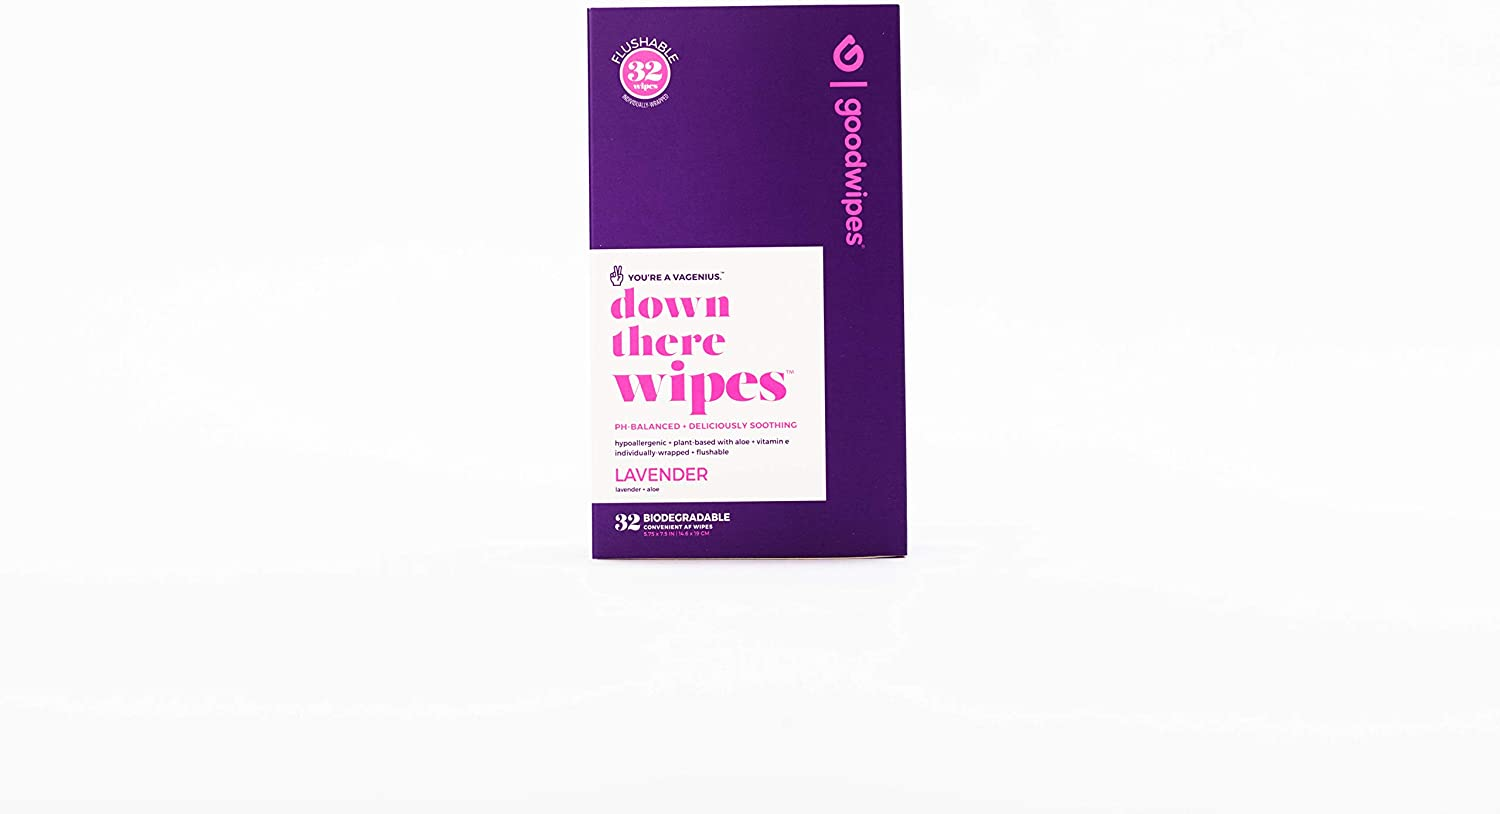 Goodwipes Wet Wipes, Lavender Scent, Flushable, PH Balanced and Hypoallergenic (32 Individual Count): Health & Personal Care